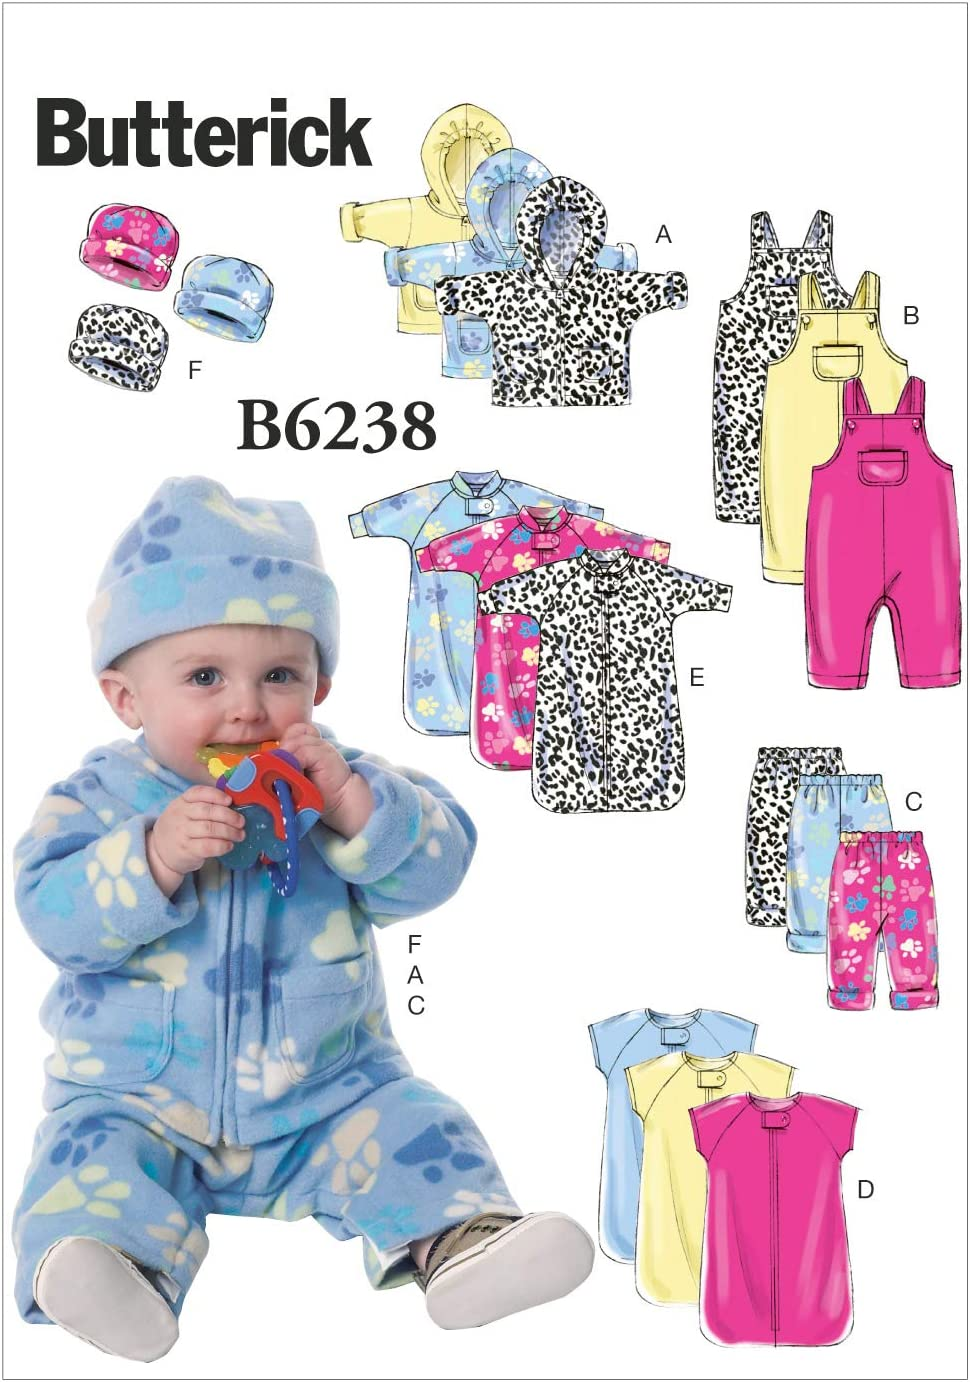 Butterick Patterns B5583 Infants Bunting Shirt Jumpsuit Mittens and Booties NB-S-M Blanket Diaper Cover Bib Size NB0 Hat